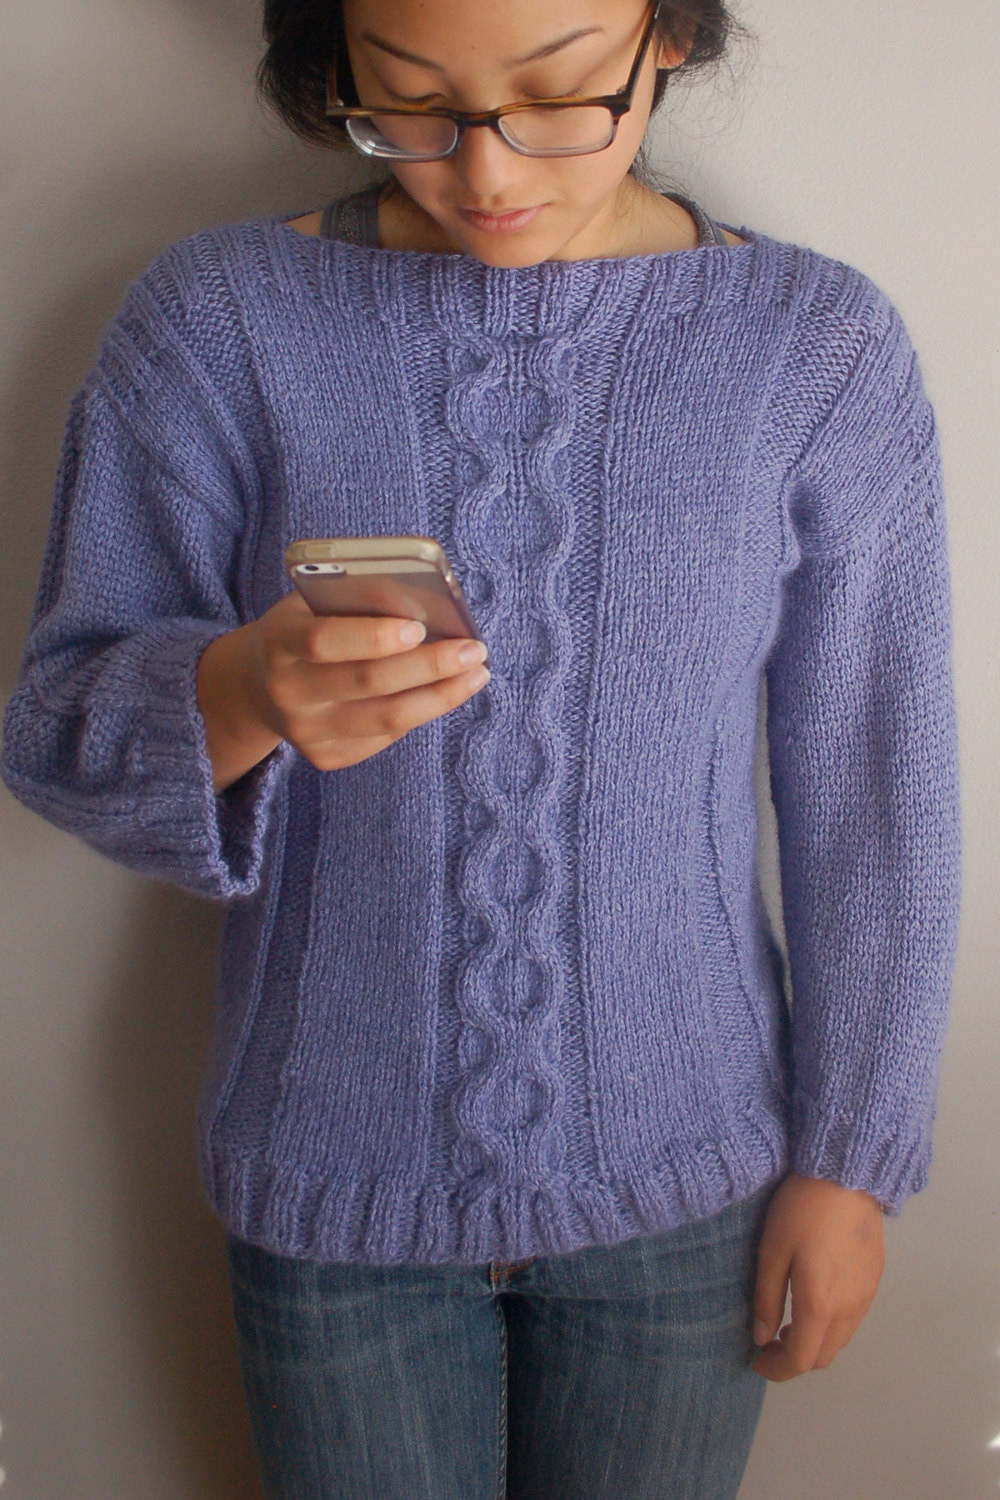 Unique Cable Sweater Knitting Pattern Easy to Knit Pullover Cable Knit Sweater Pattern Of Luxury Easy Sweater Knitting Patterns Cable Knit Sweater Pattern